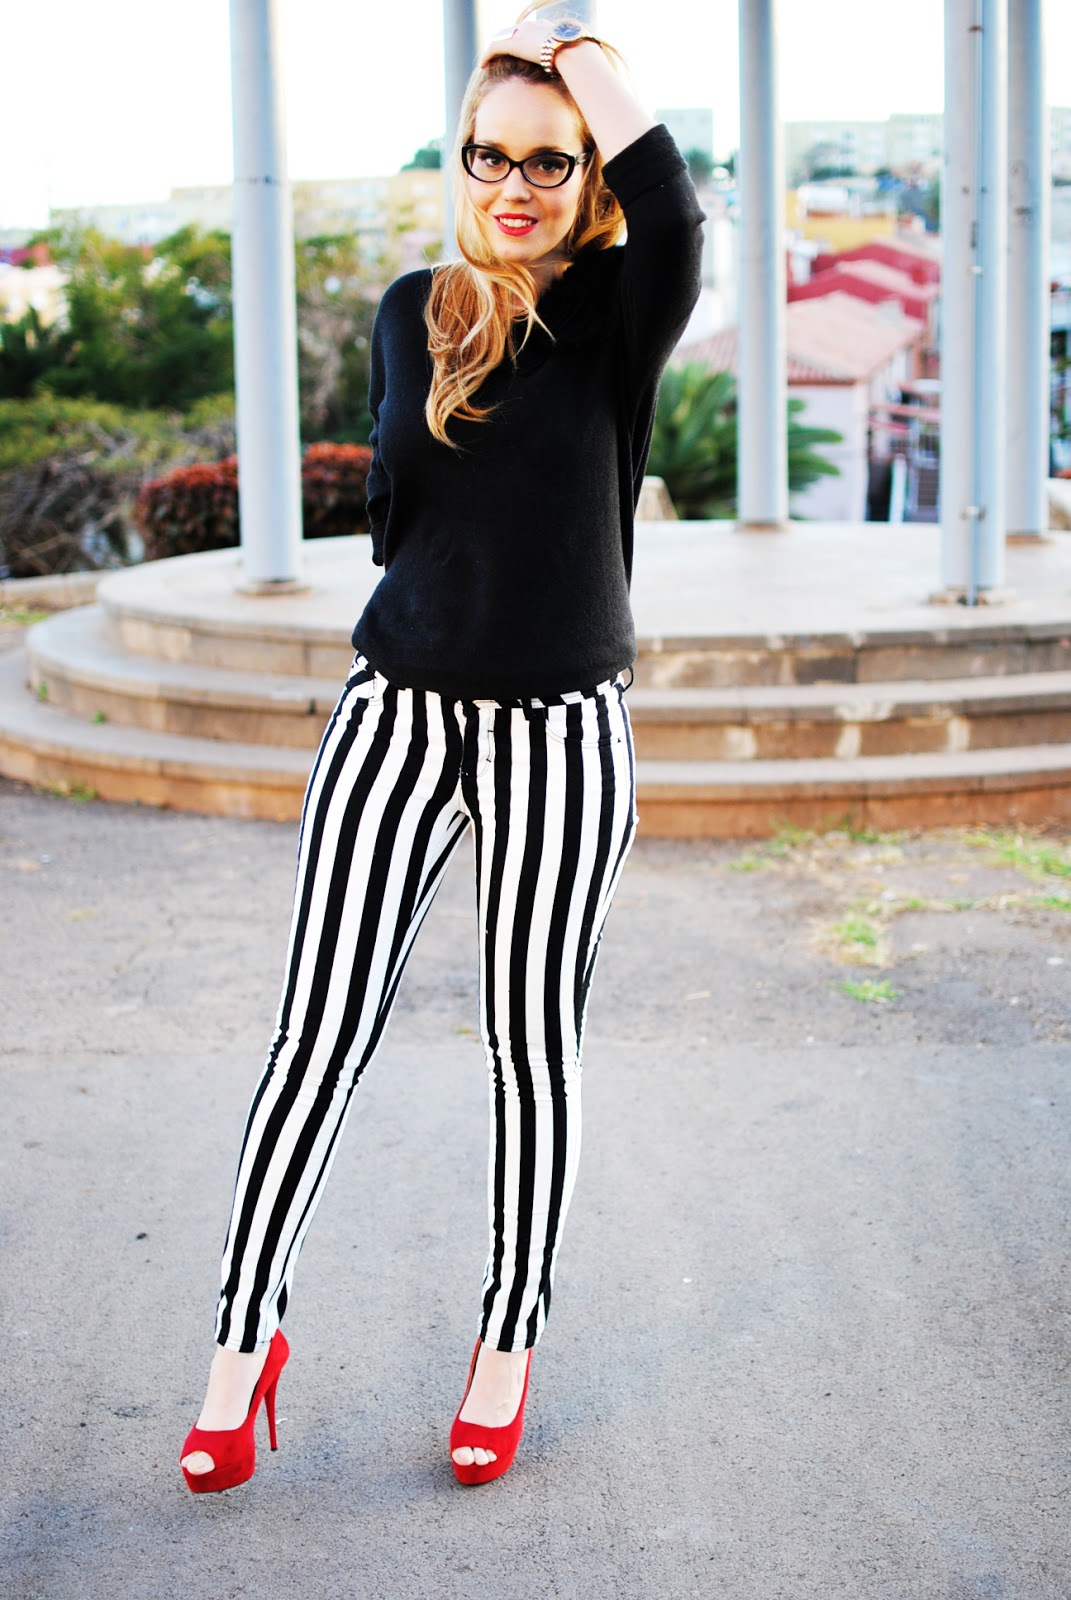 nery hdez, monochrome, nowistyle style, stripes pants, glasses